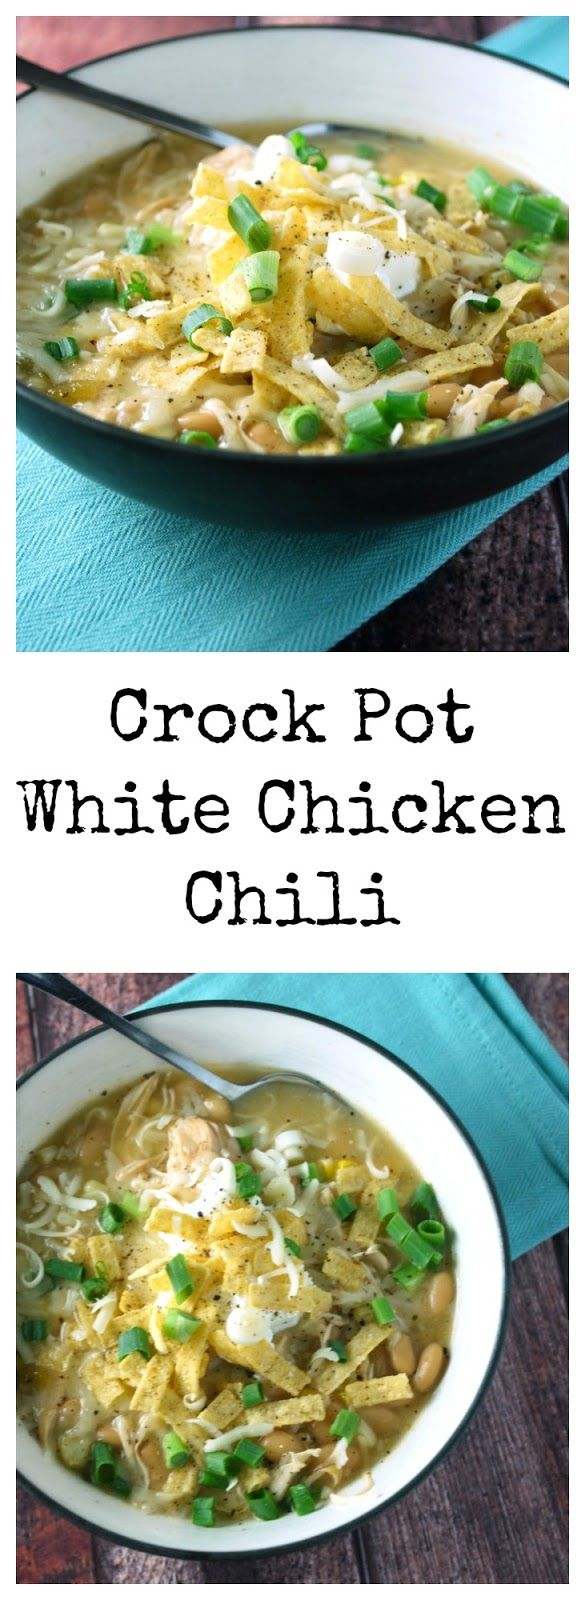 This easy Crock Pot White Chicken Chili is so simple yet so delicious! Definitely putting this on the meal plan!